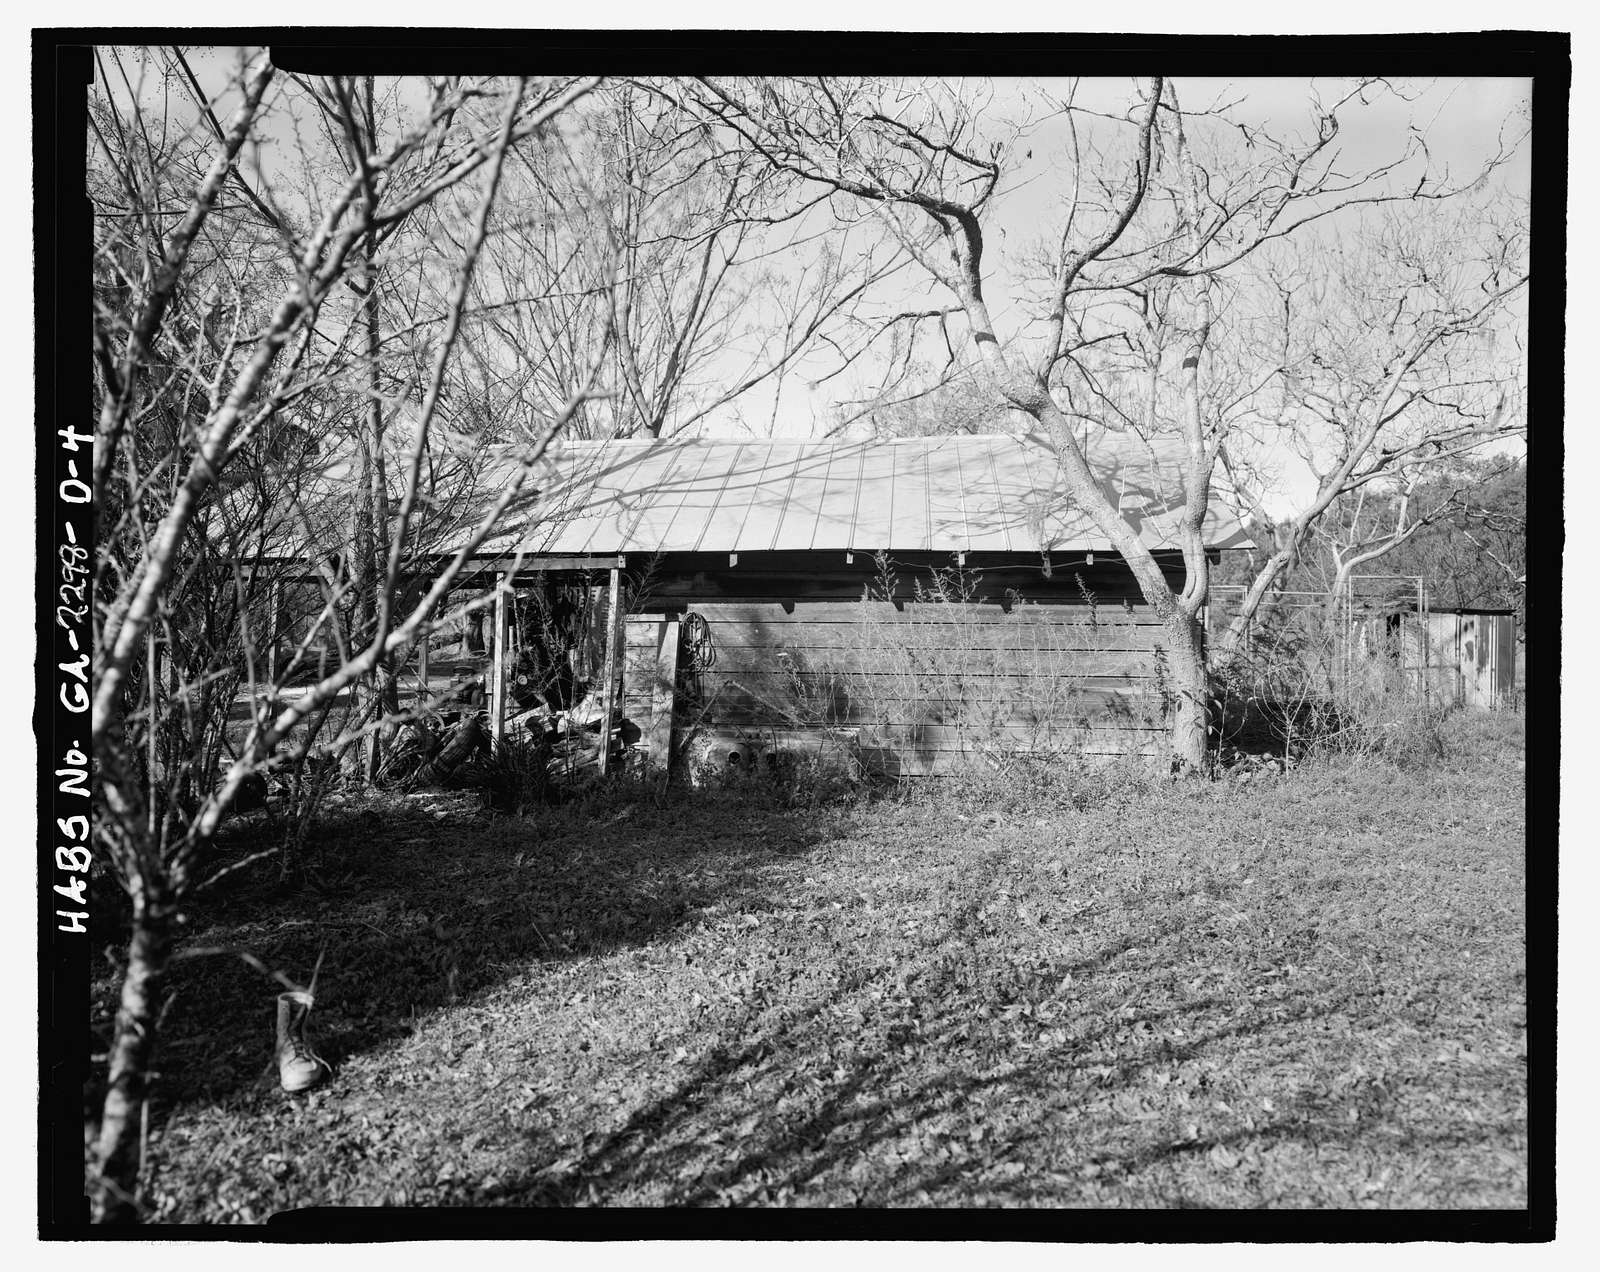 Jaudon-Bragg-Snelling Farm, Smokehouse, North side of GA State Route 21, Springfield, Effingham County, GA